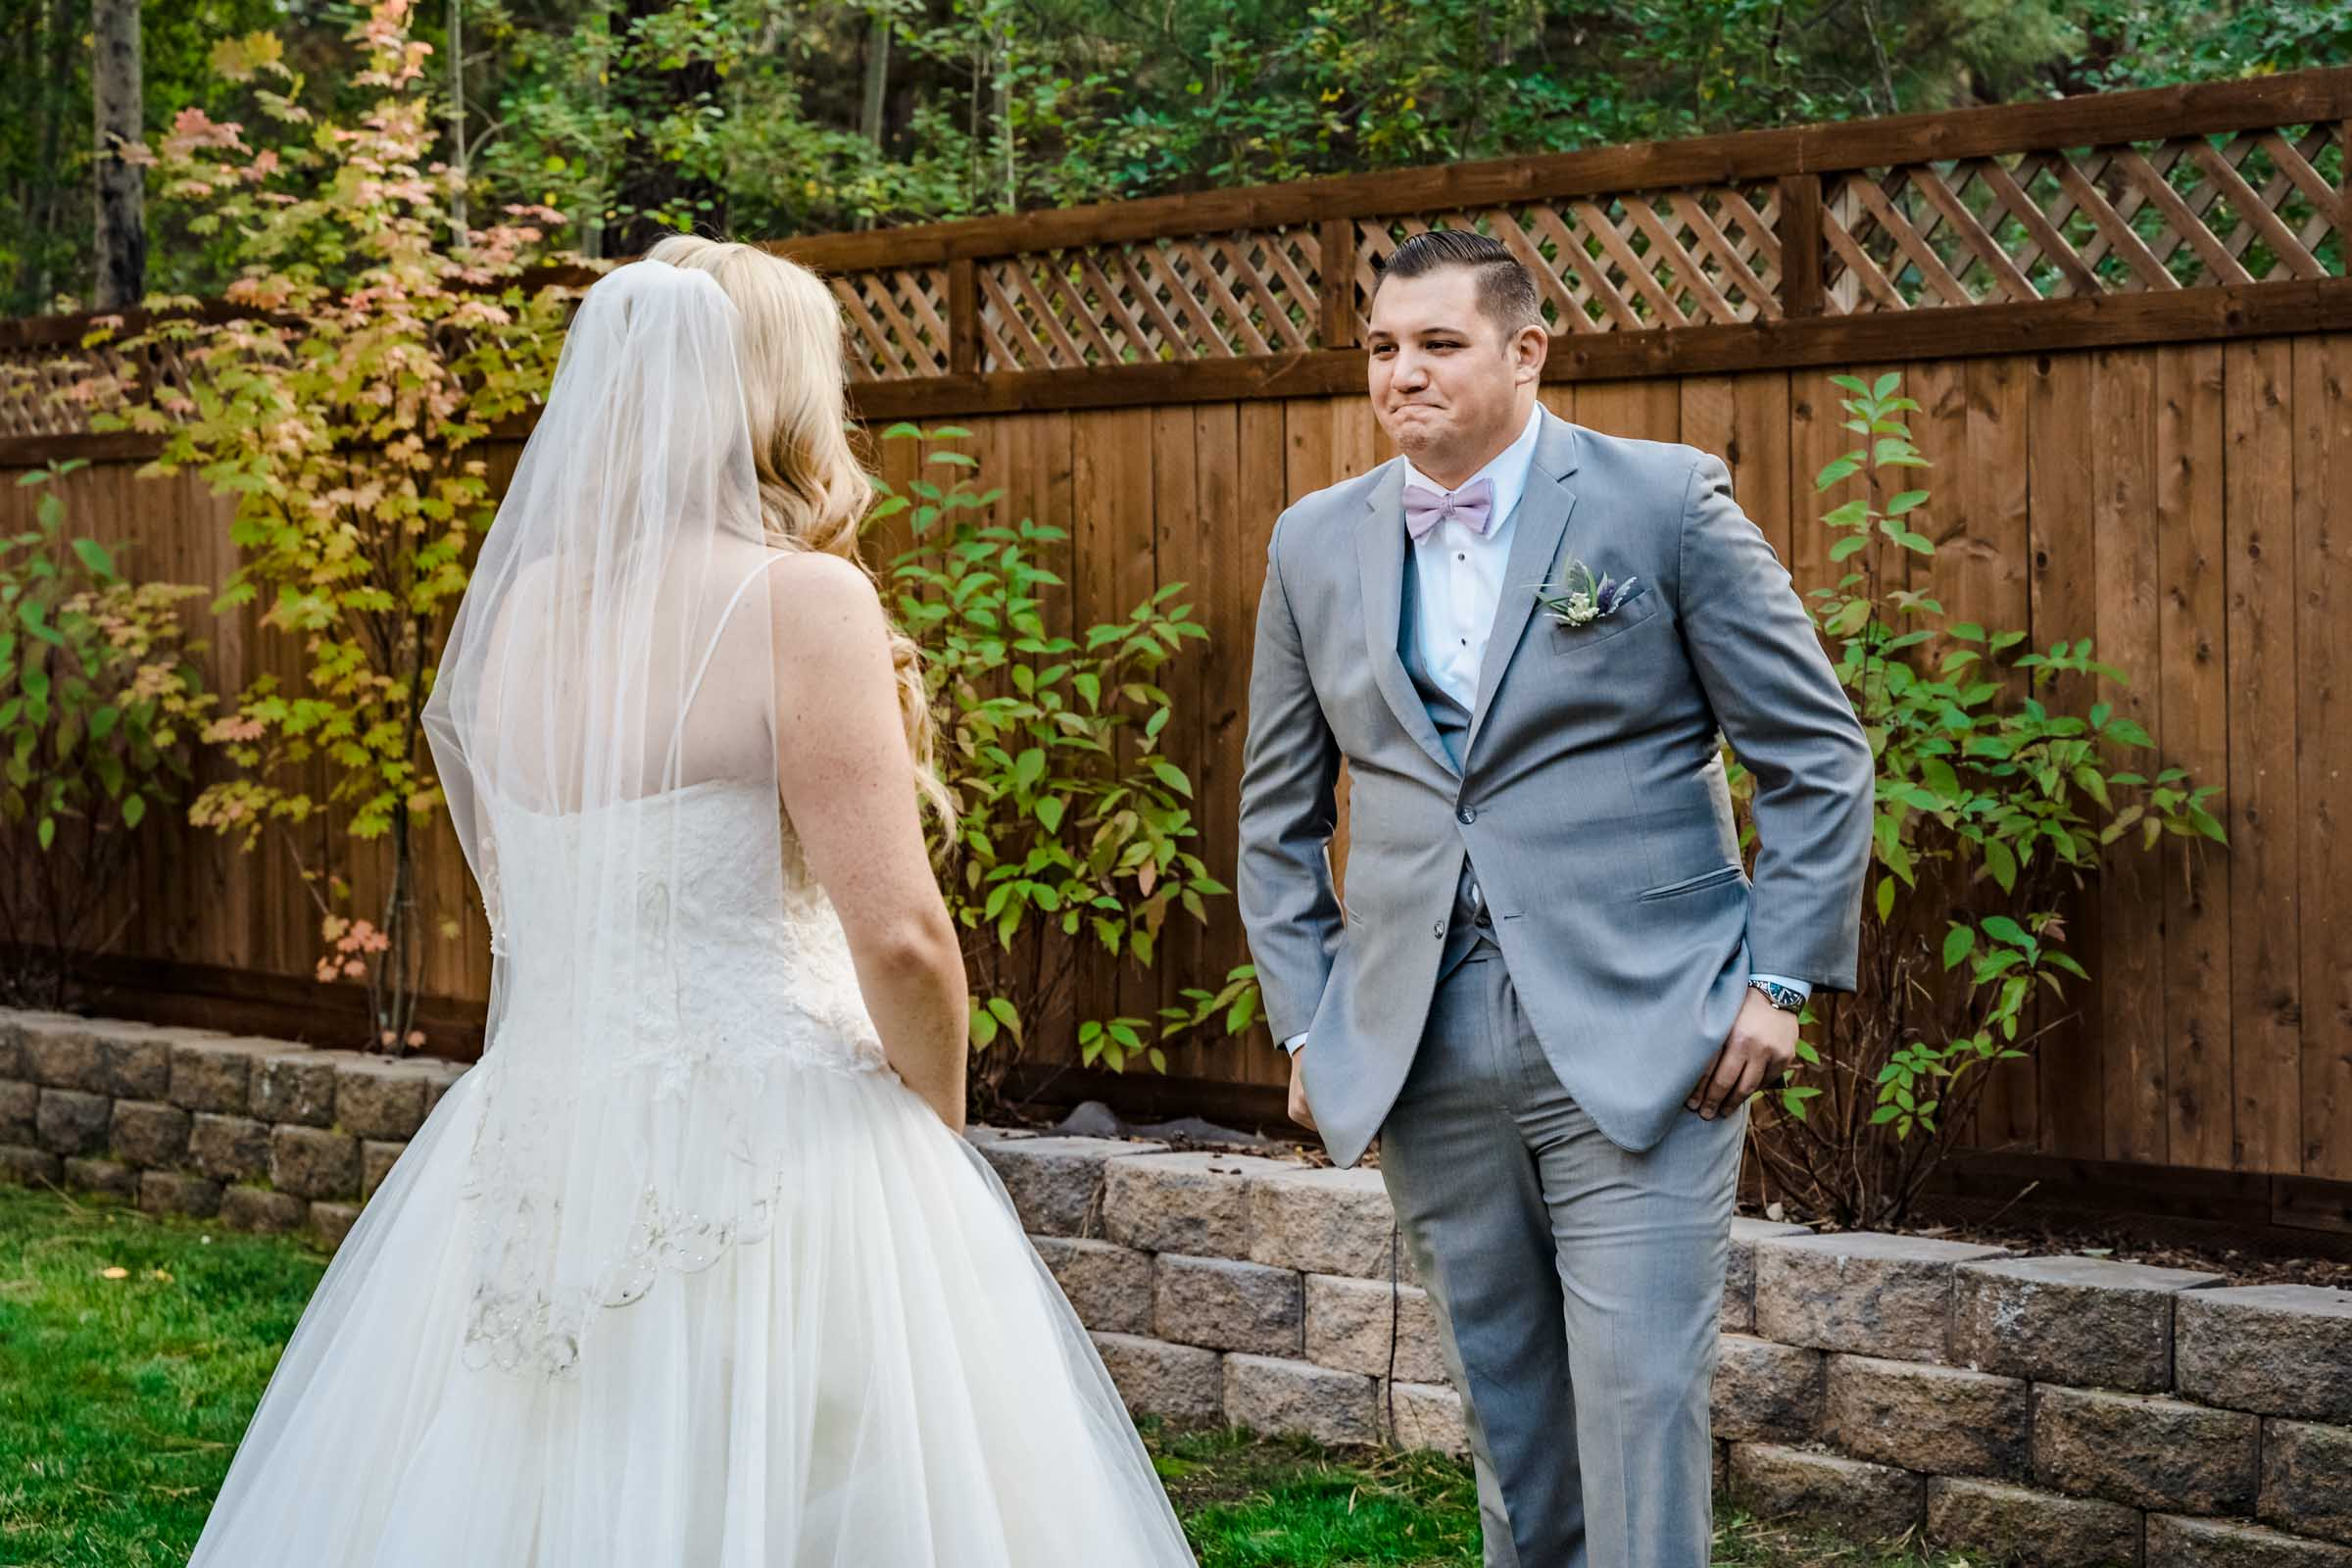 First Look with the bride and groom